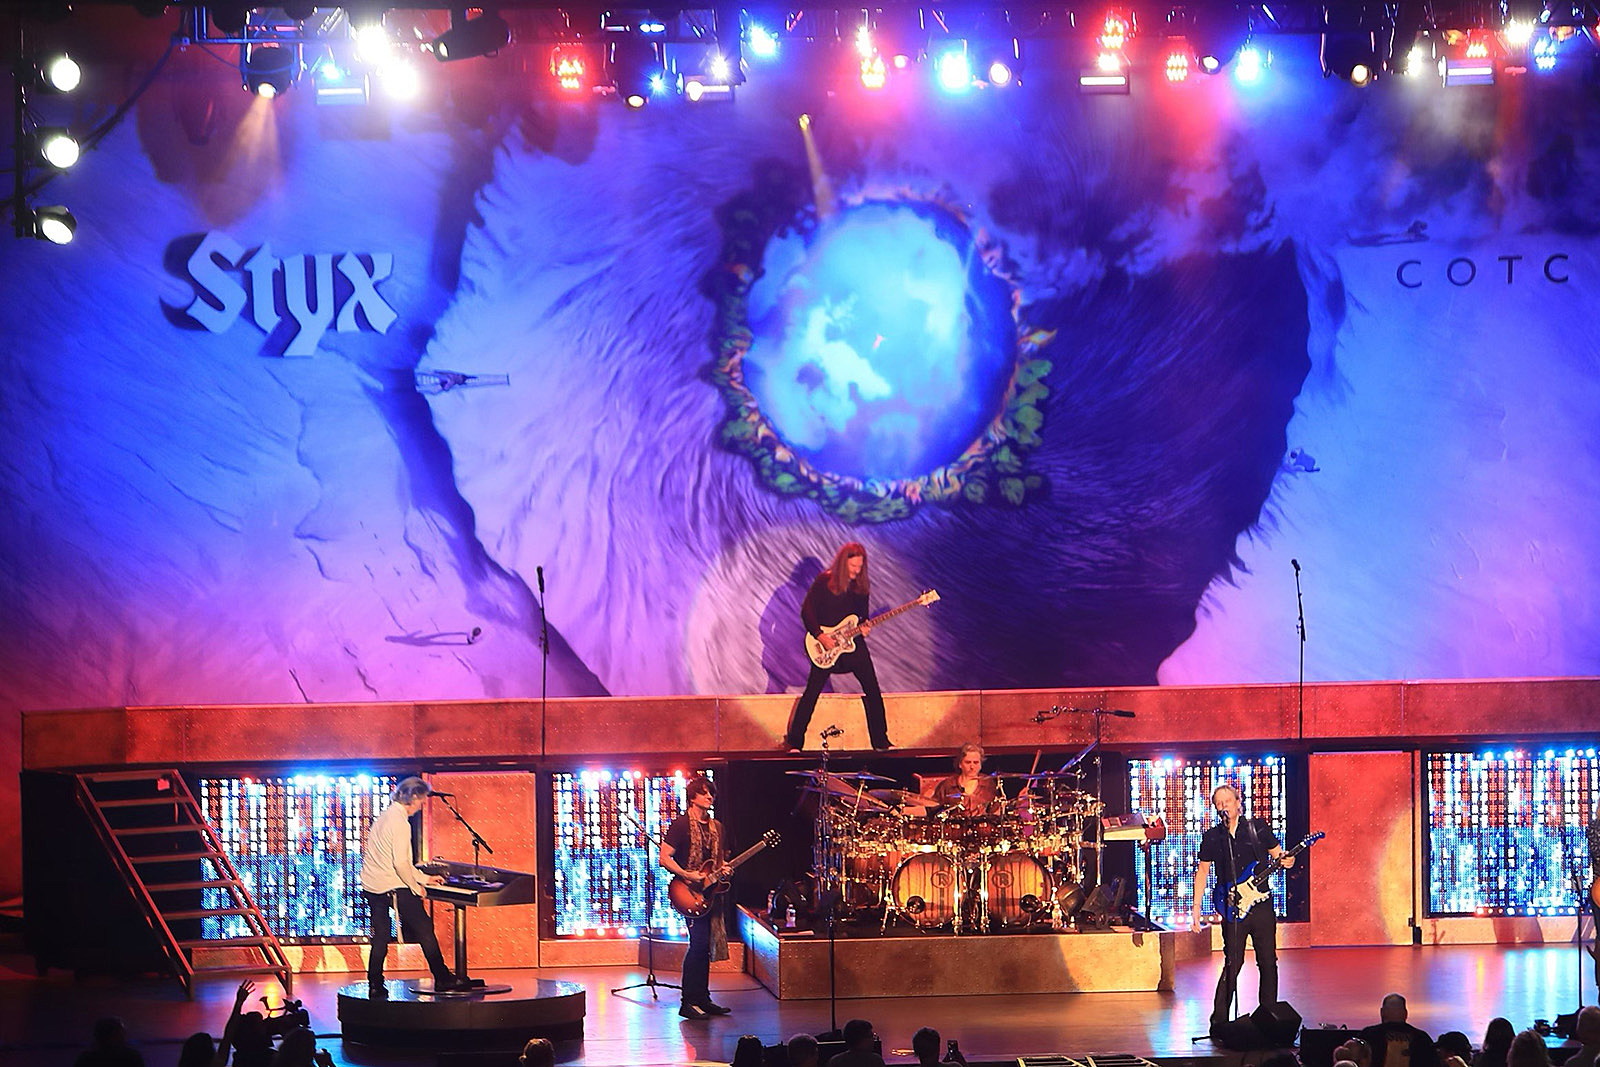 Styx 'Make Some Noise' With First Post-COVID Concerts